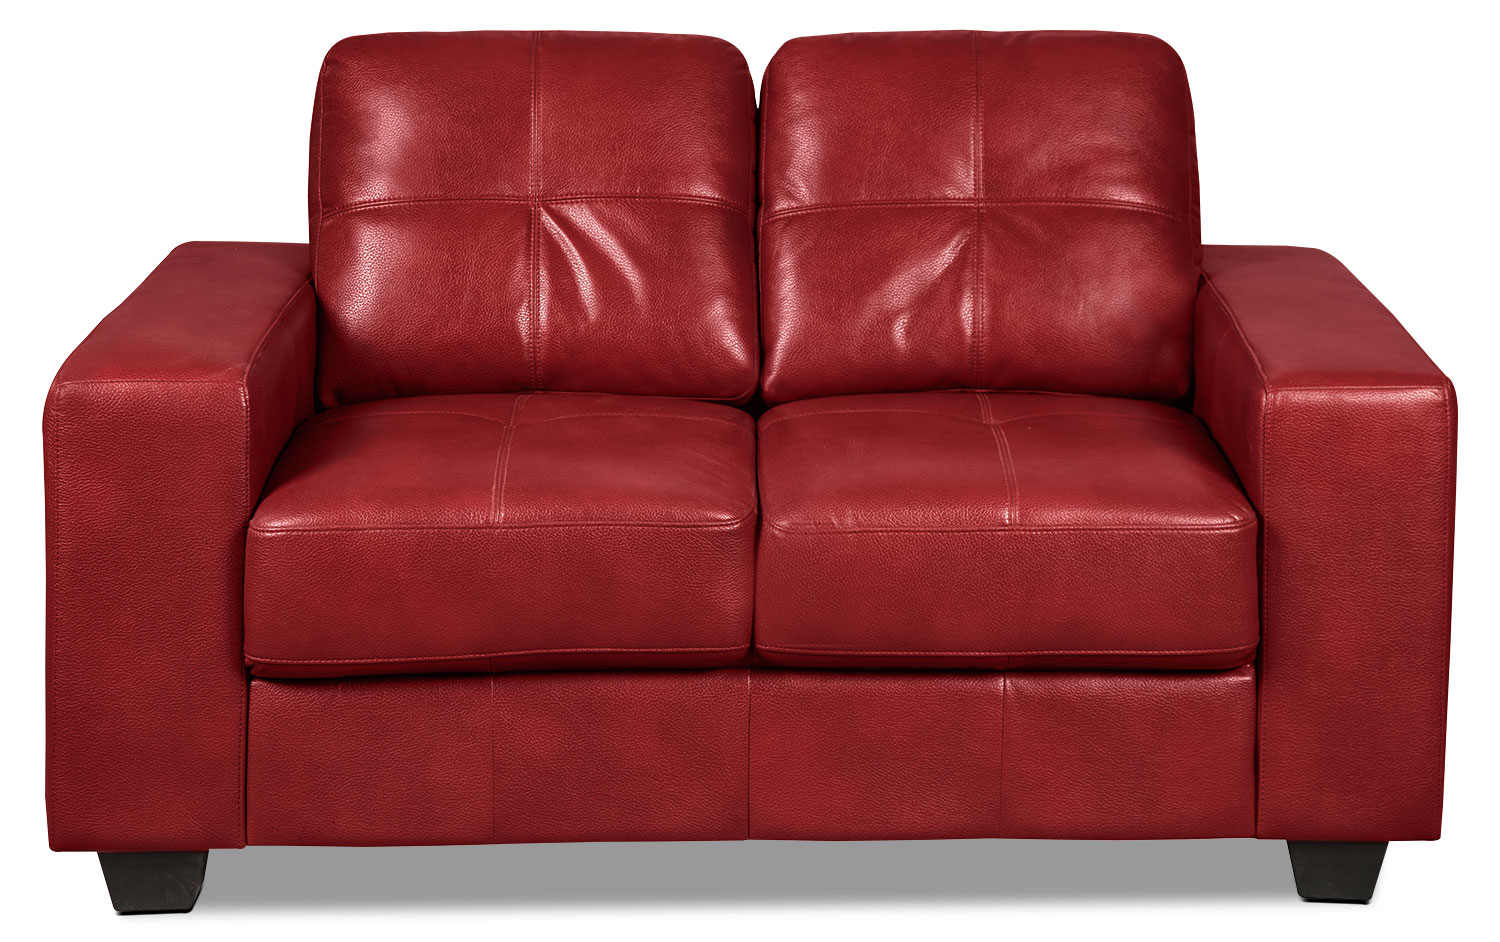 Living Room Furniture - Costa Leather-Look Fabric Loveseat – Red